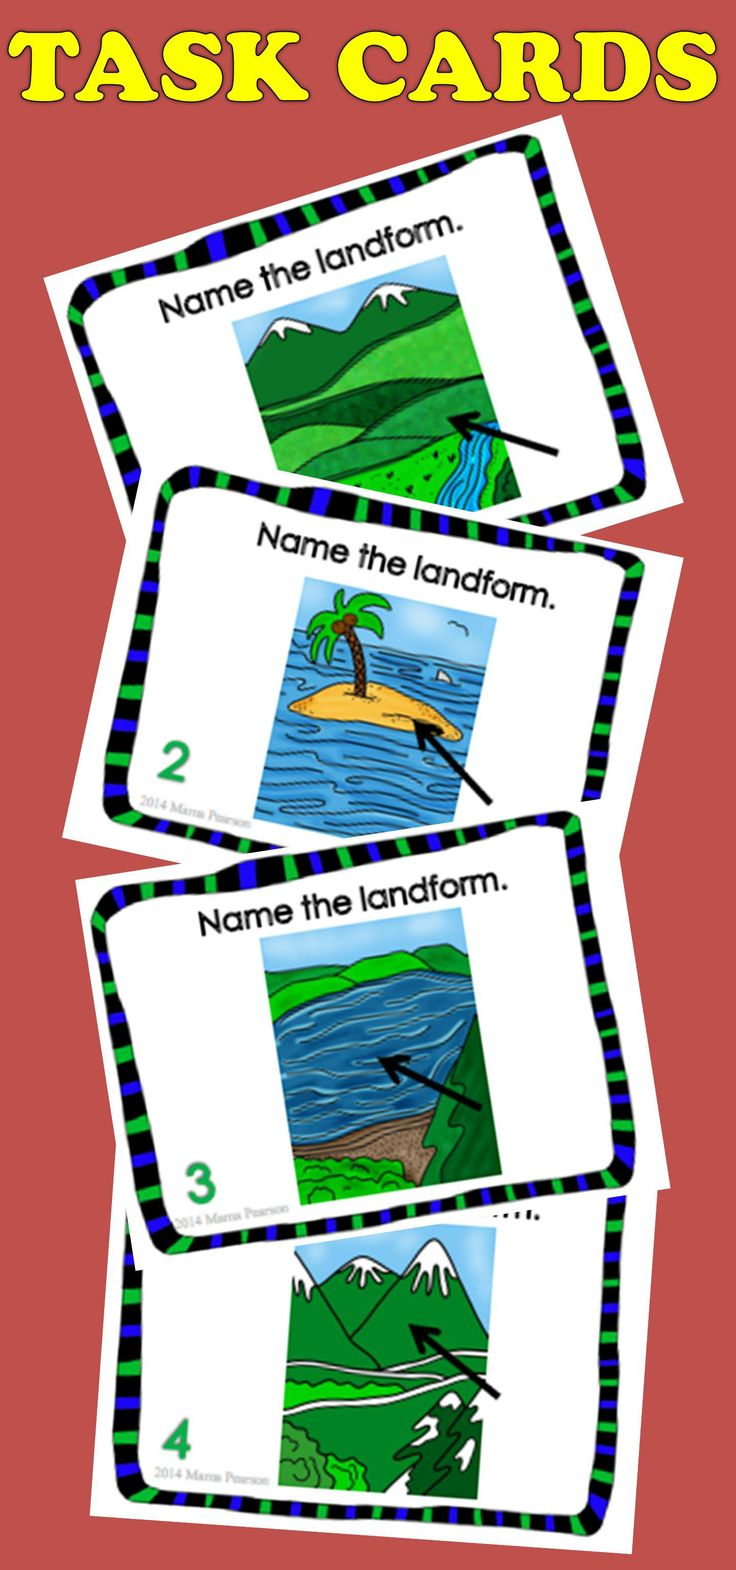 Workbooks landform matching worksheets : 13 best Landforms images on Pinterest | Teaching ideas, 2nd grade ...